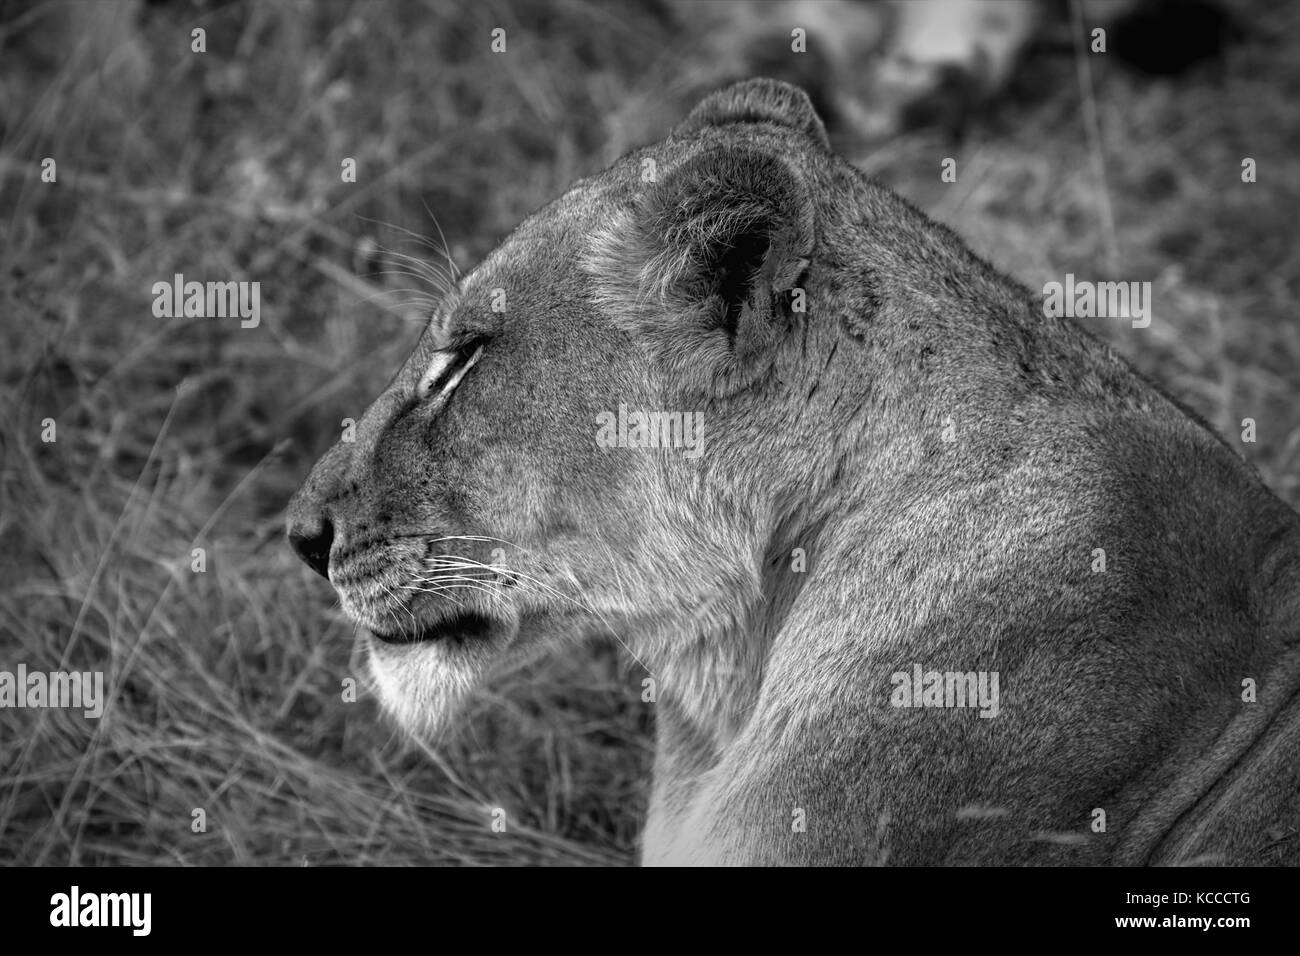 Close up of lion in the Kruger National Park, South Africa Stock Photo